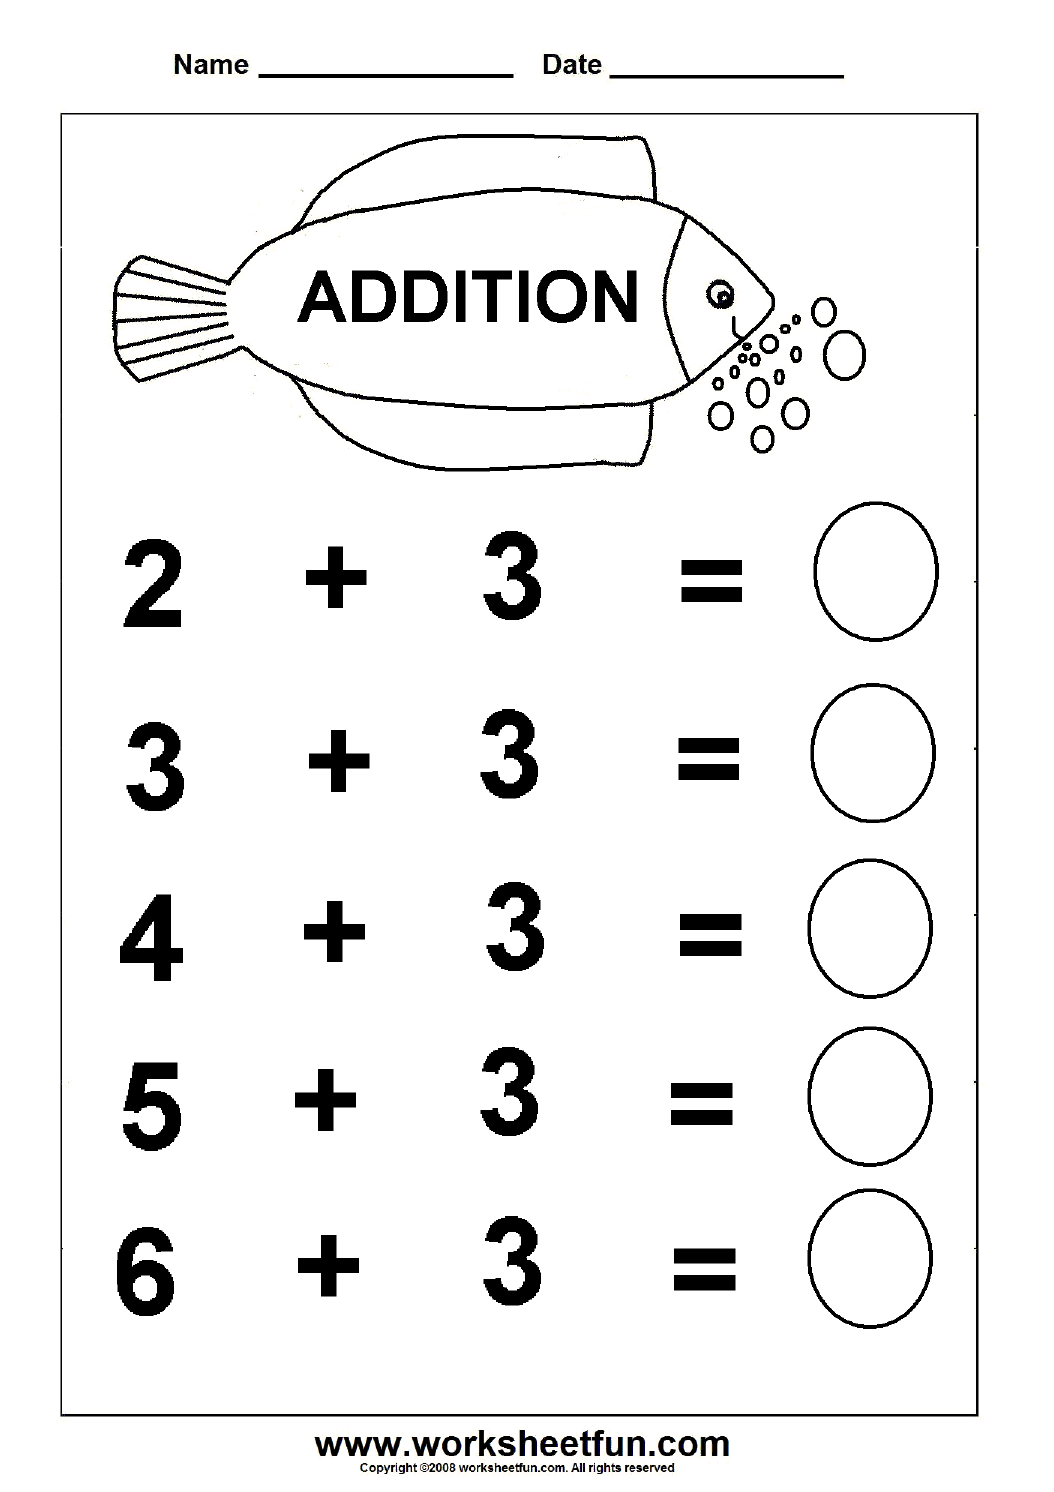 math worksheet : addition  6 worksheets  printable worksheets  pinterest  : Kindergarten Math Worksheets Addition